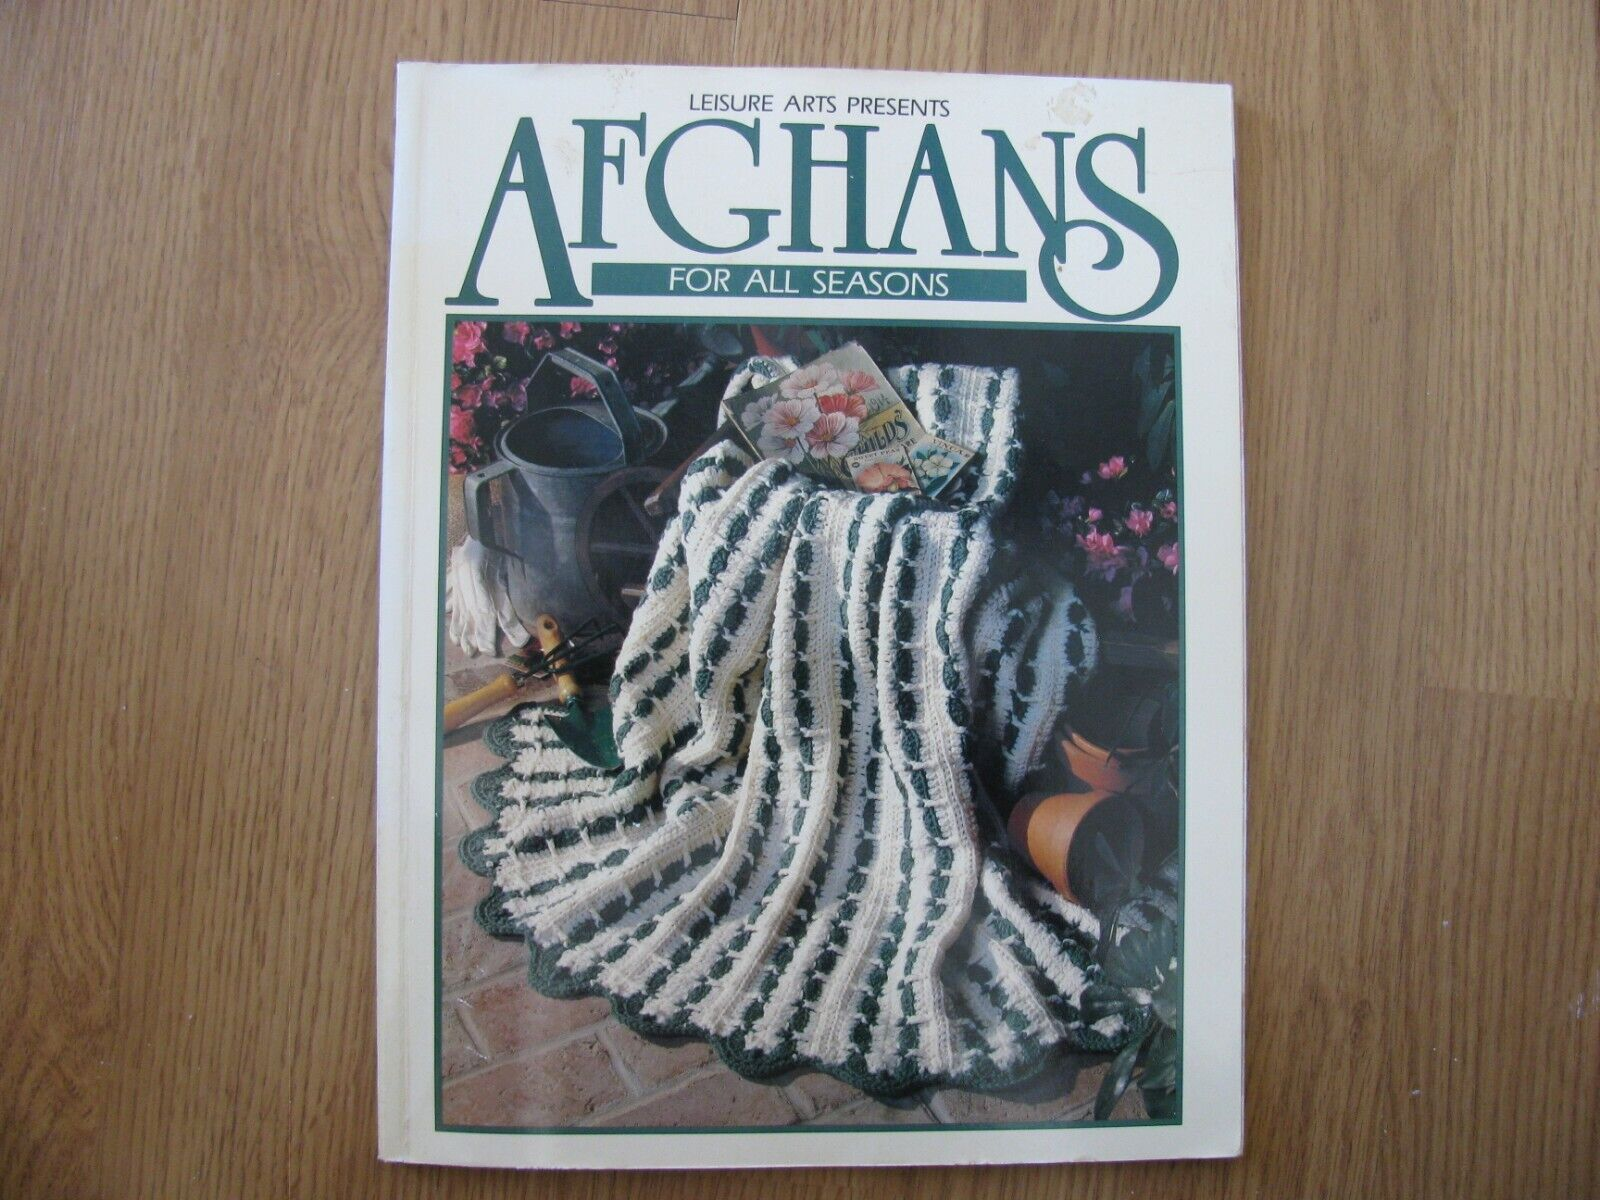 Leisure Arts Presents Afghans for All Seasons, 1993, pbk